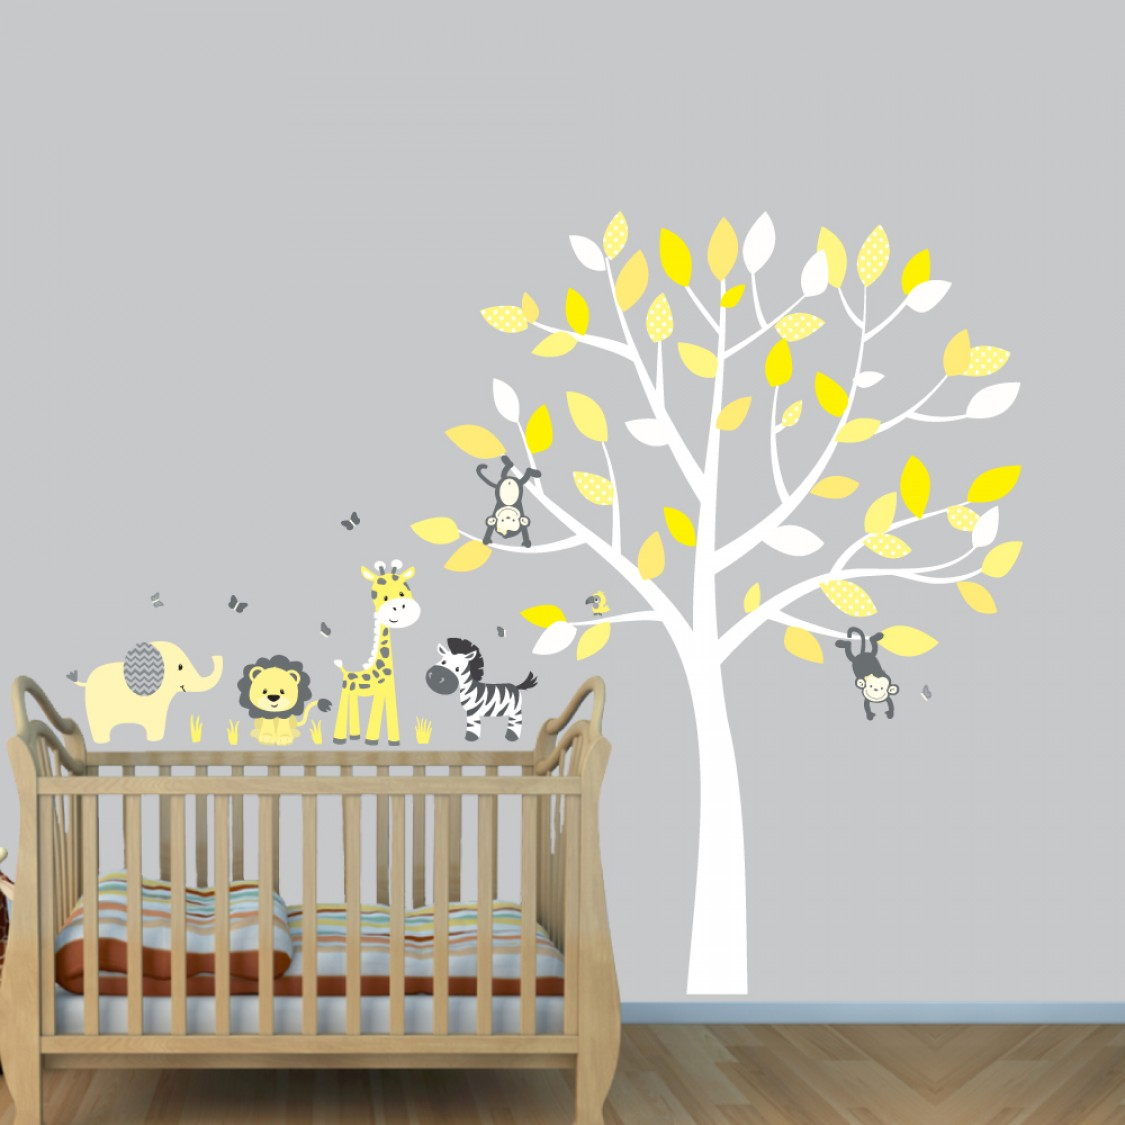 Grey Jungle Wall Stickers With Elephant Decals For Yellow Nursery - Yellow wall decals